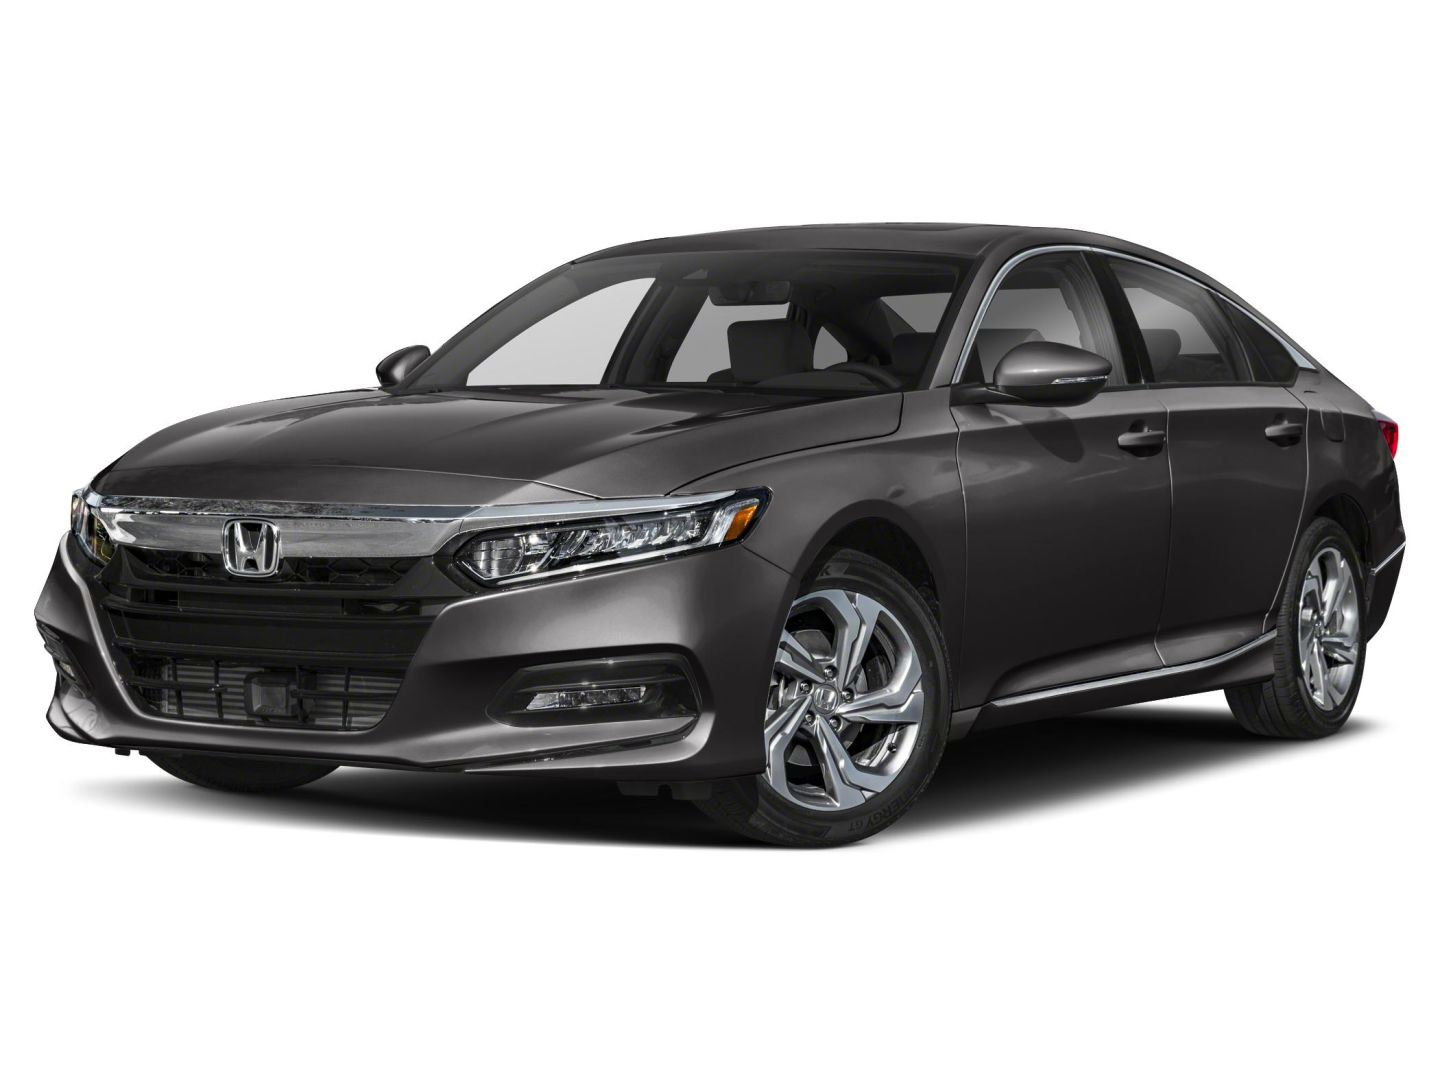 2019 Honda Accord Sedan EX-L for sale in St. Albert, Alberta